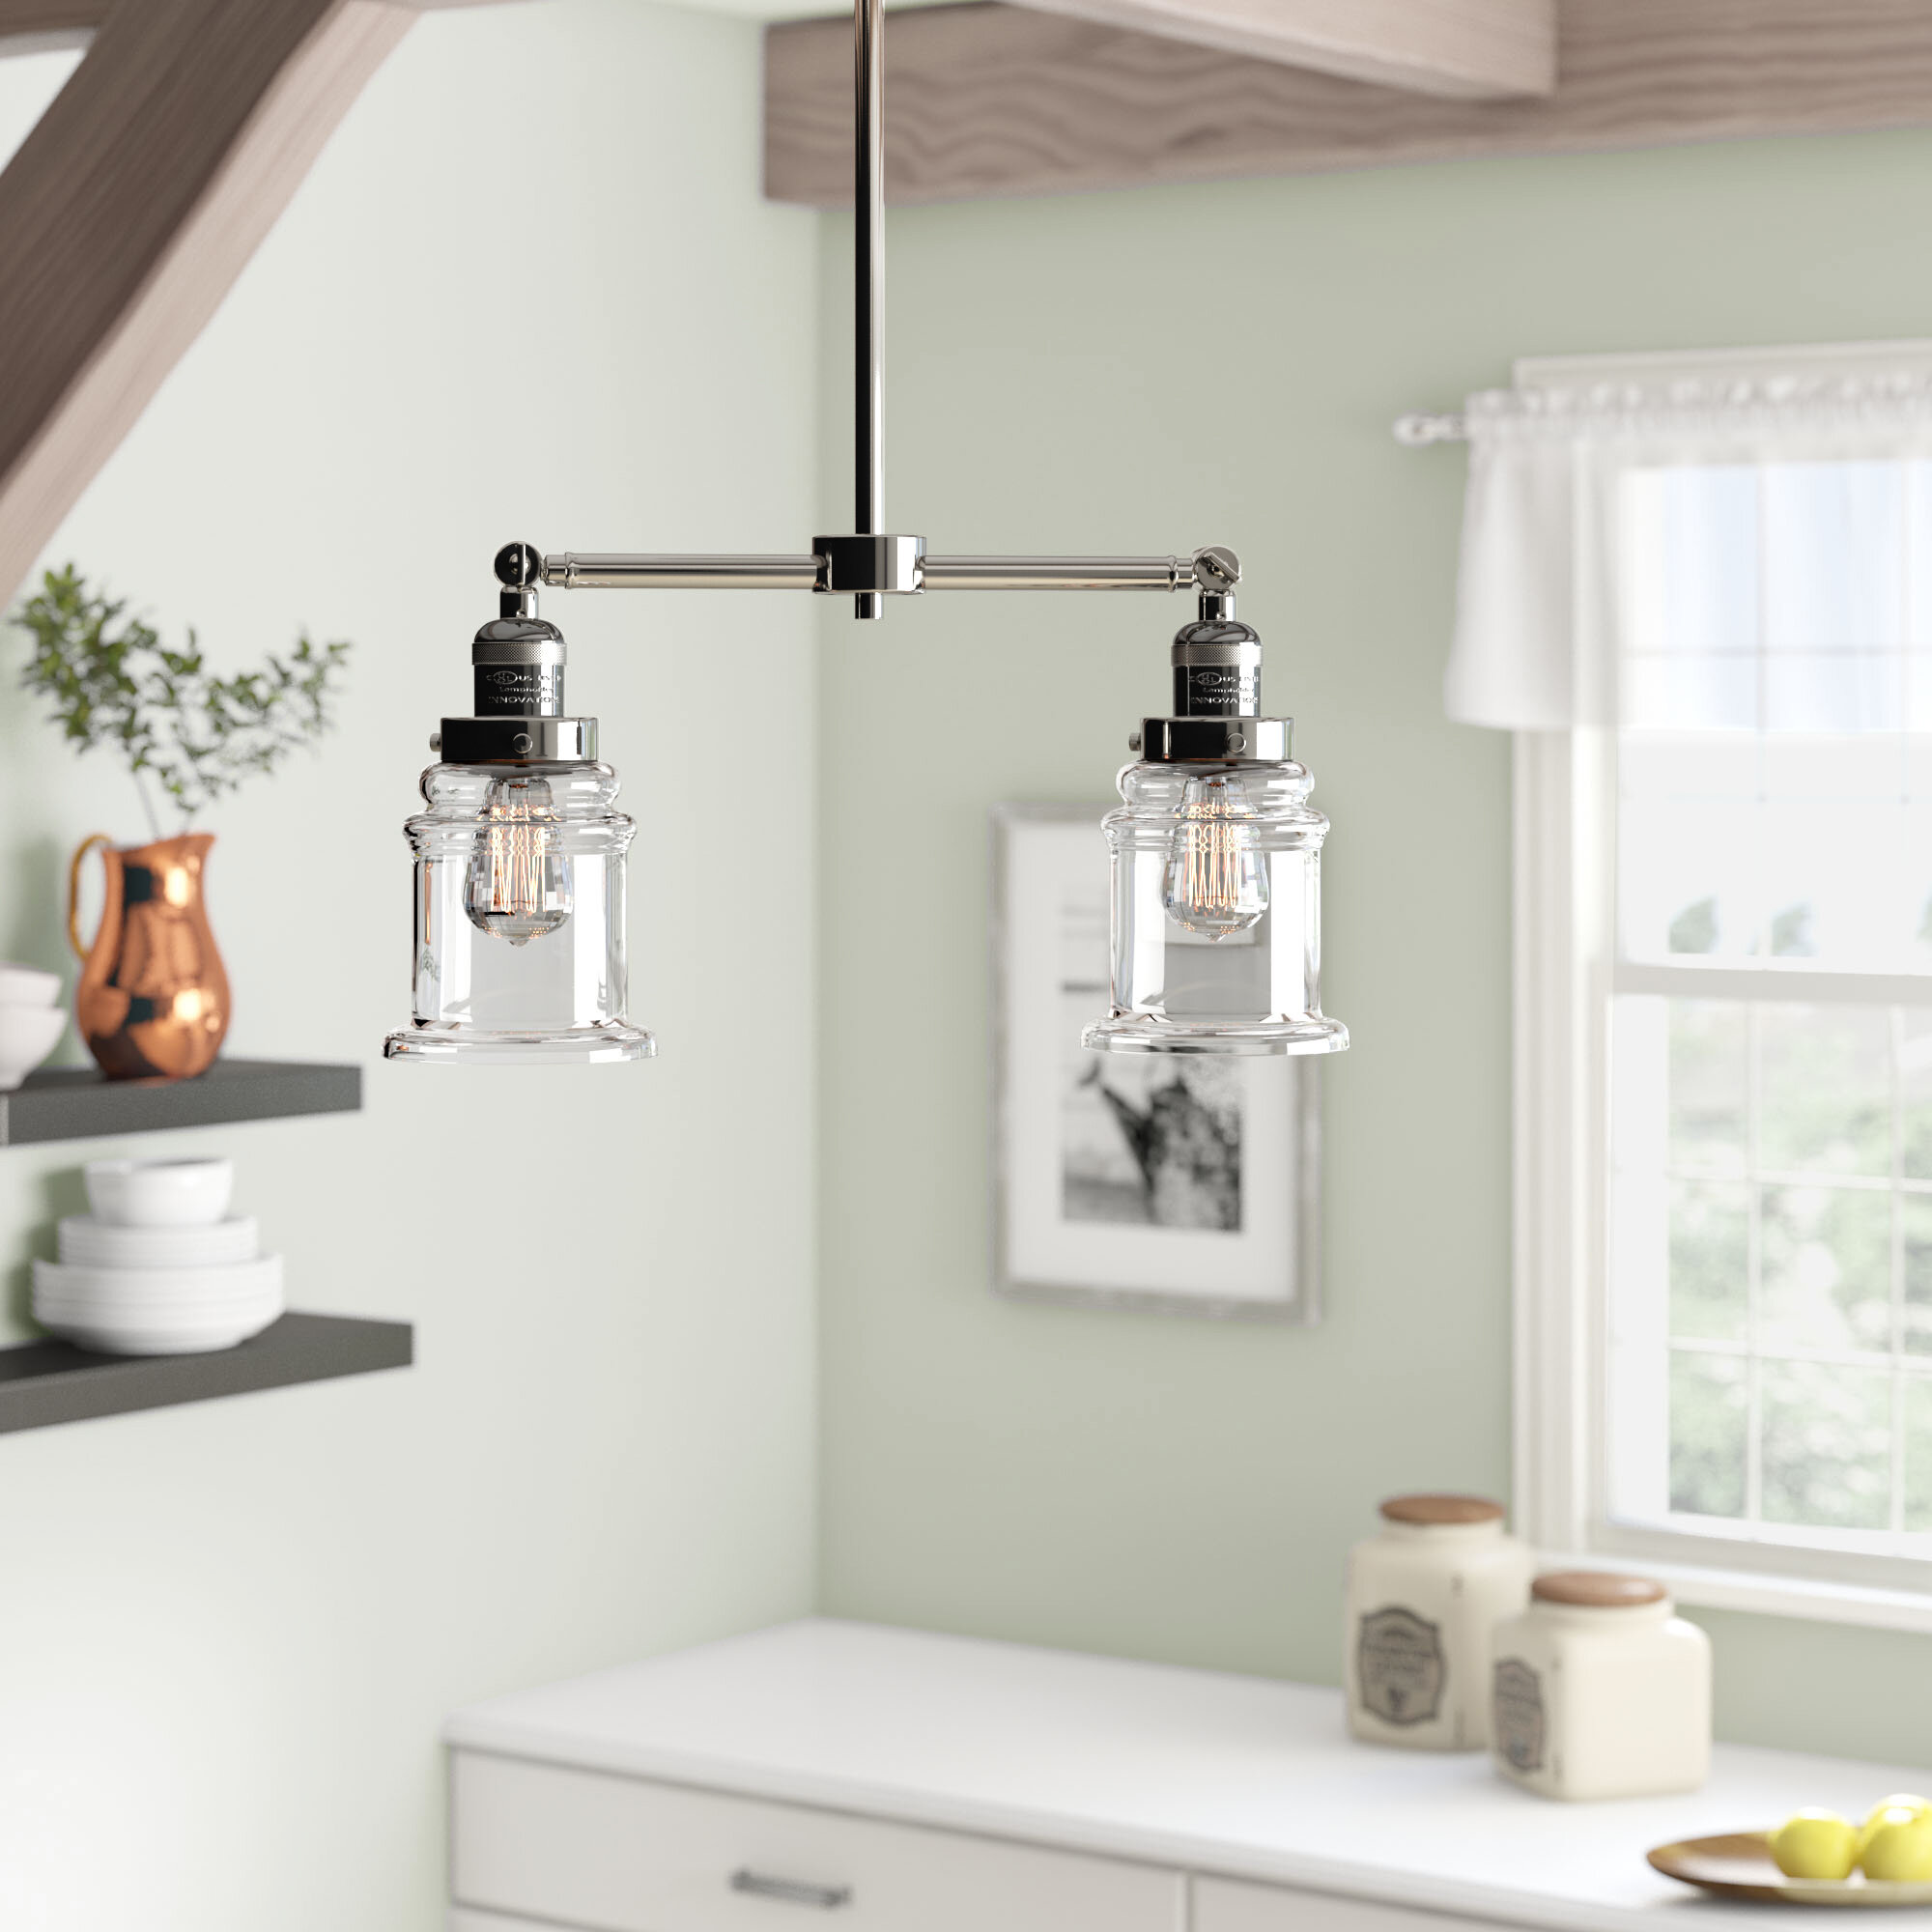 Laurel Foundry Modern Farmhouse Greeley 2 Light Kitchen Island Linear Pendant Reviews Wayfair